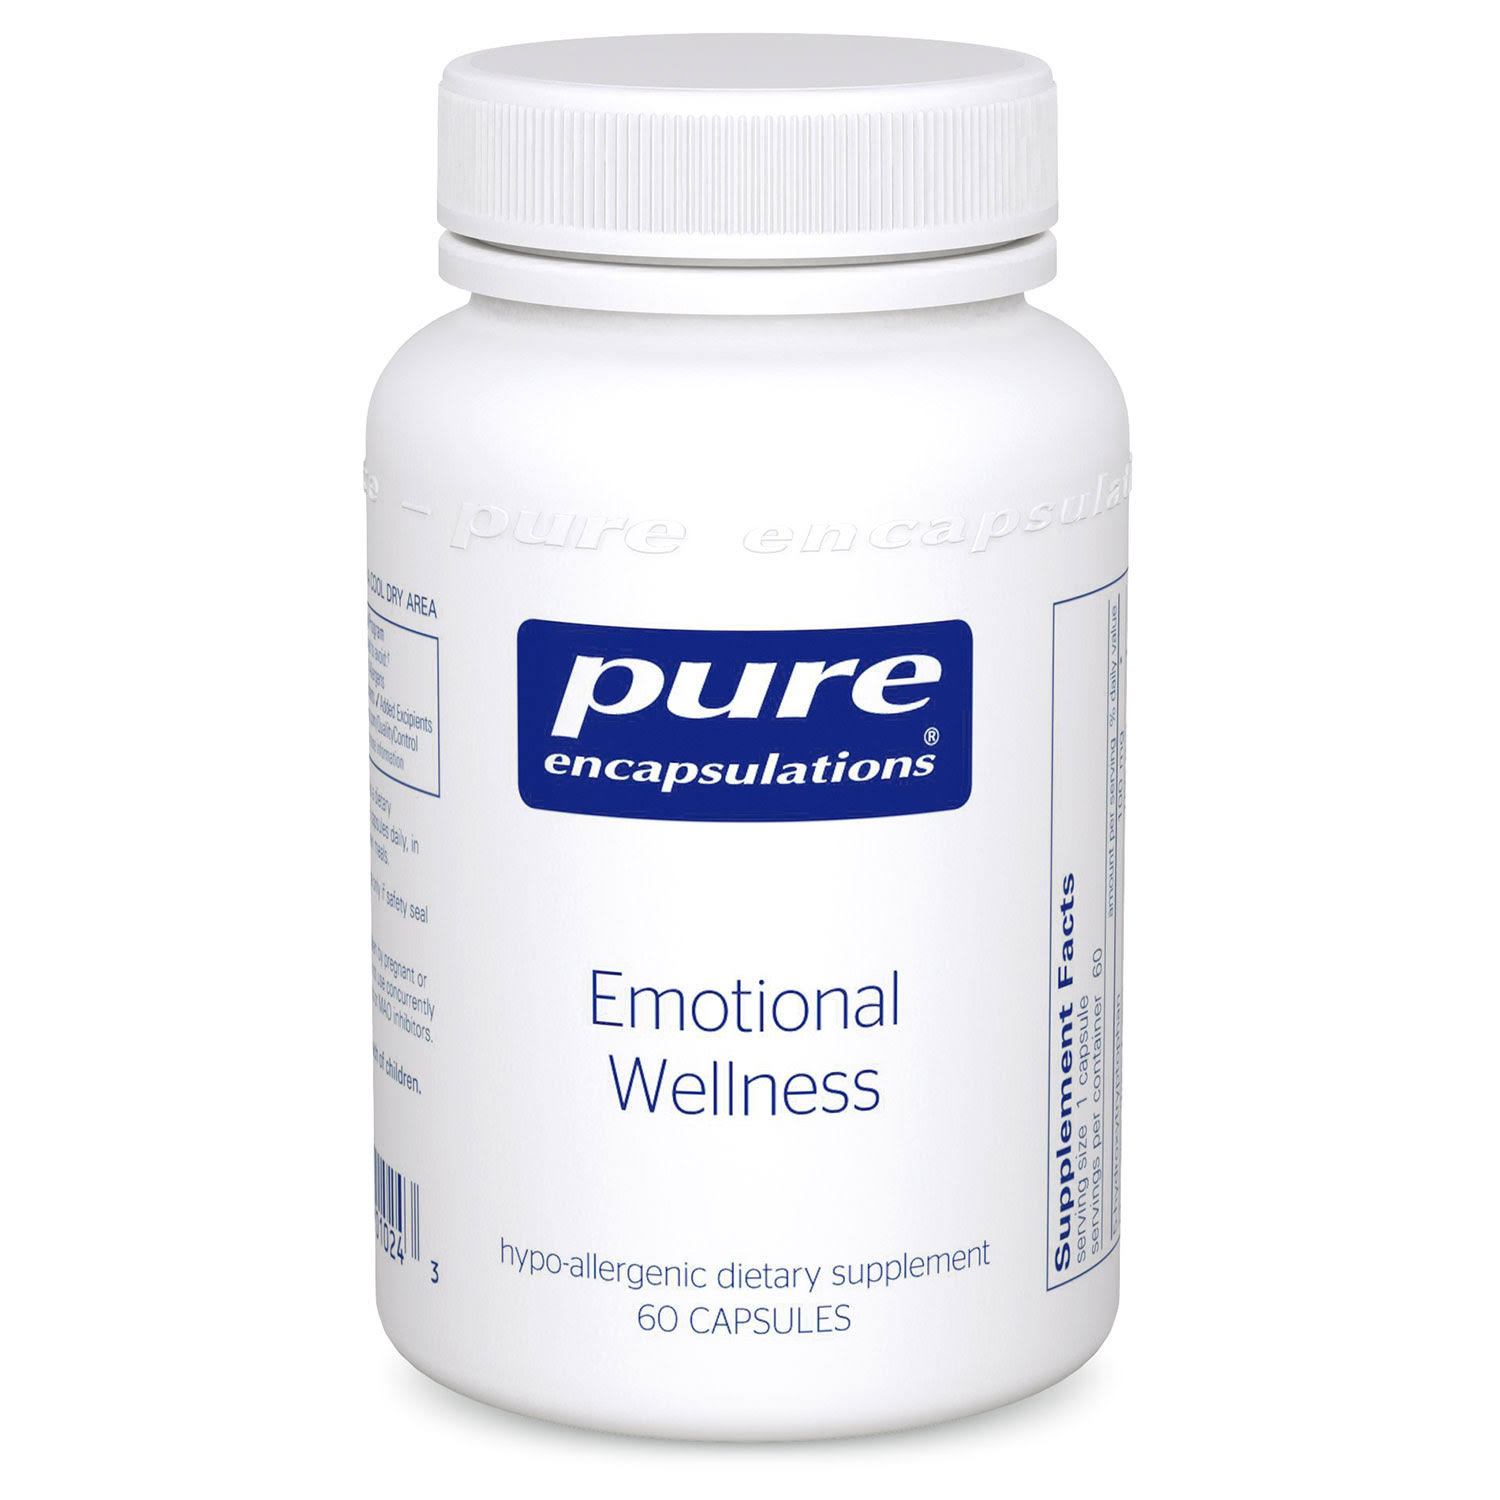 Pure Encapsulations Emotional Wellness Dietary Supplement - 60ct